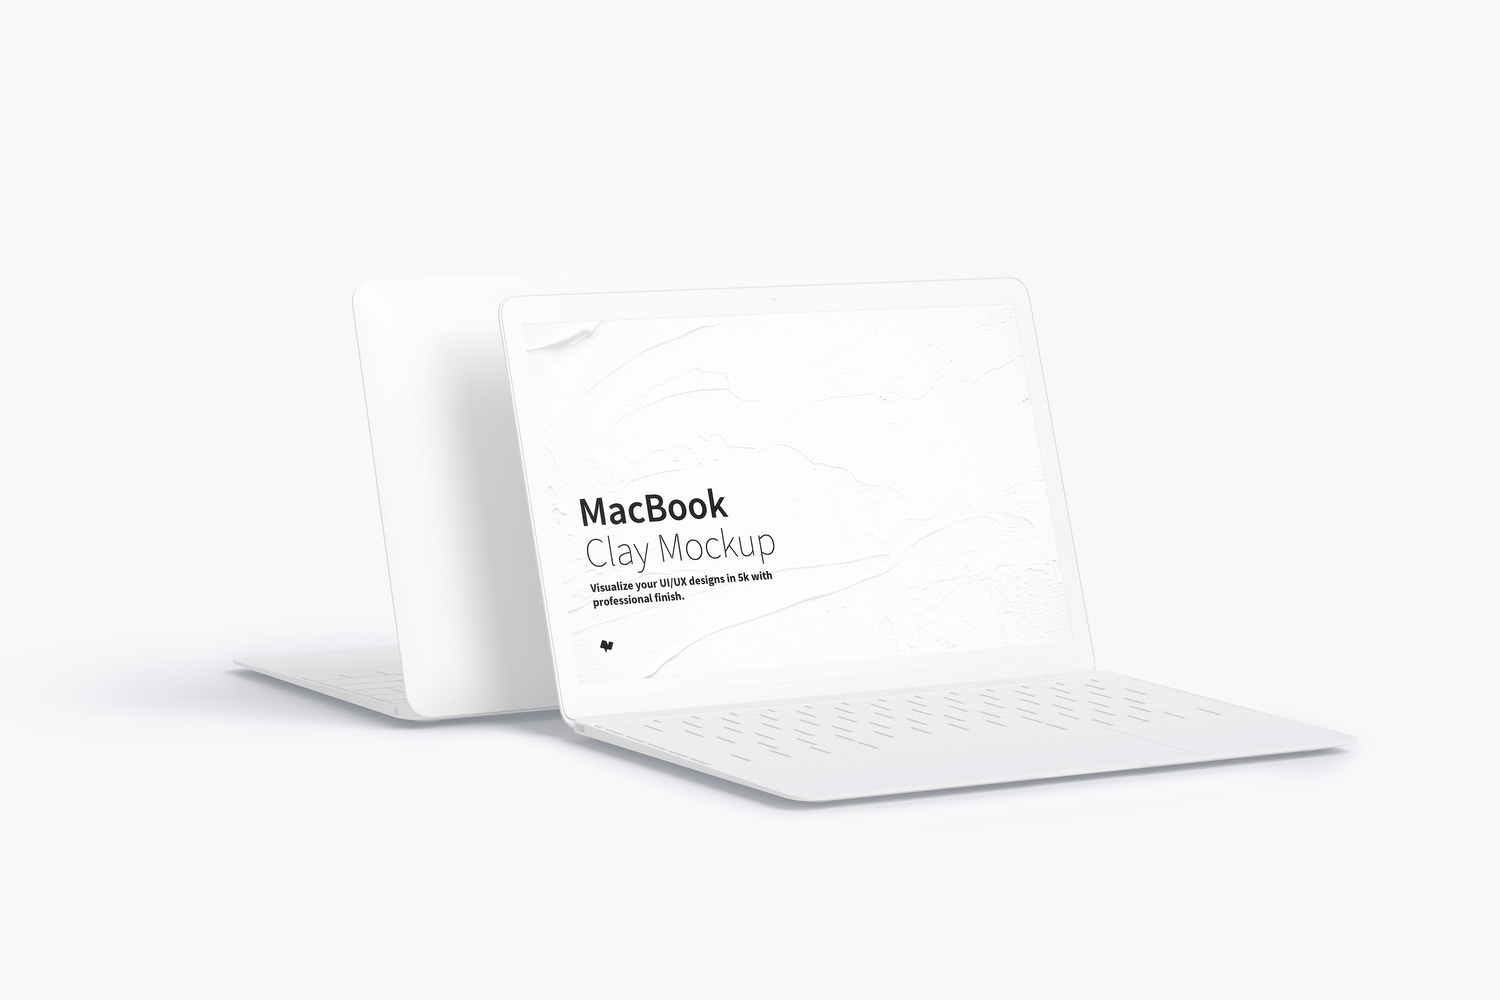 Clay MacBook Mockup (1) by Original Mockups on Original Mockups